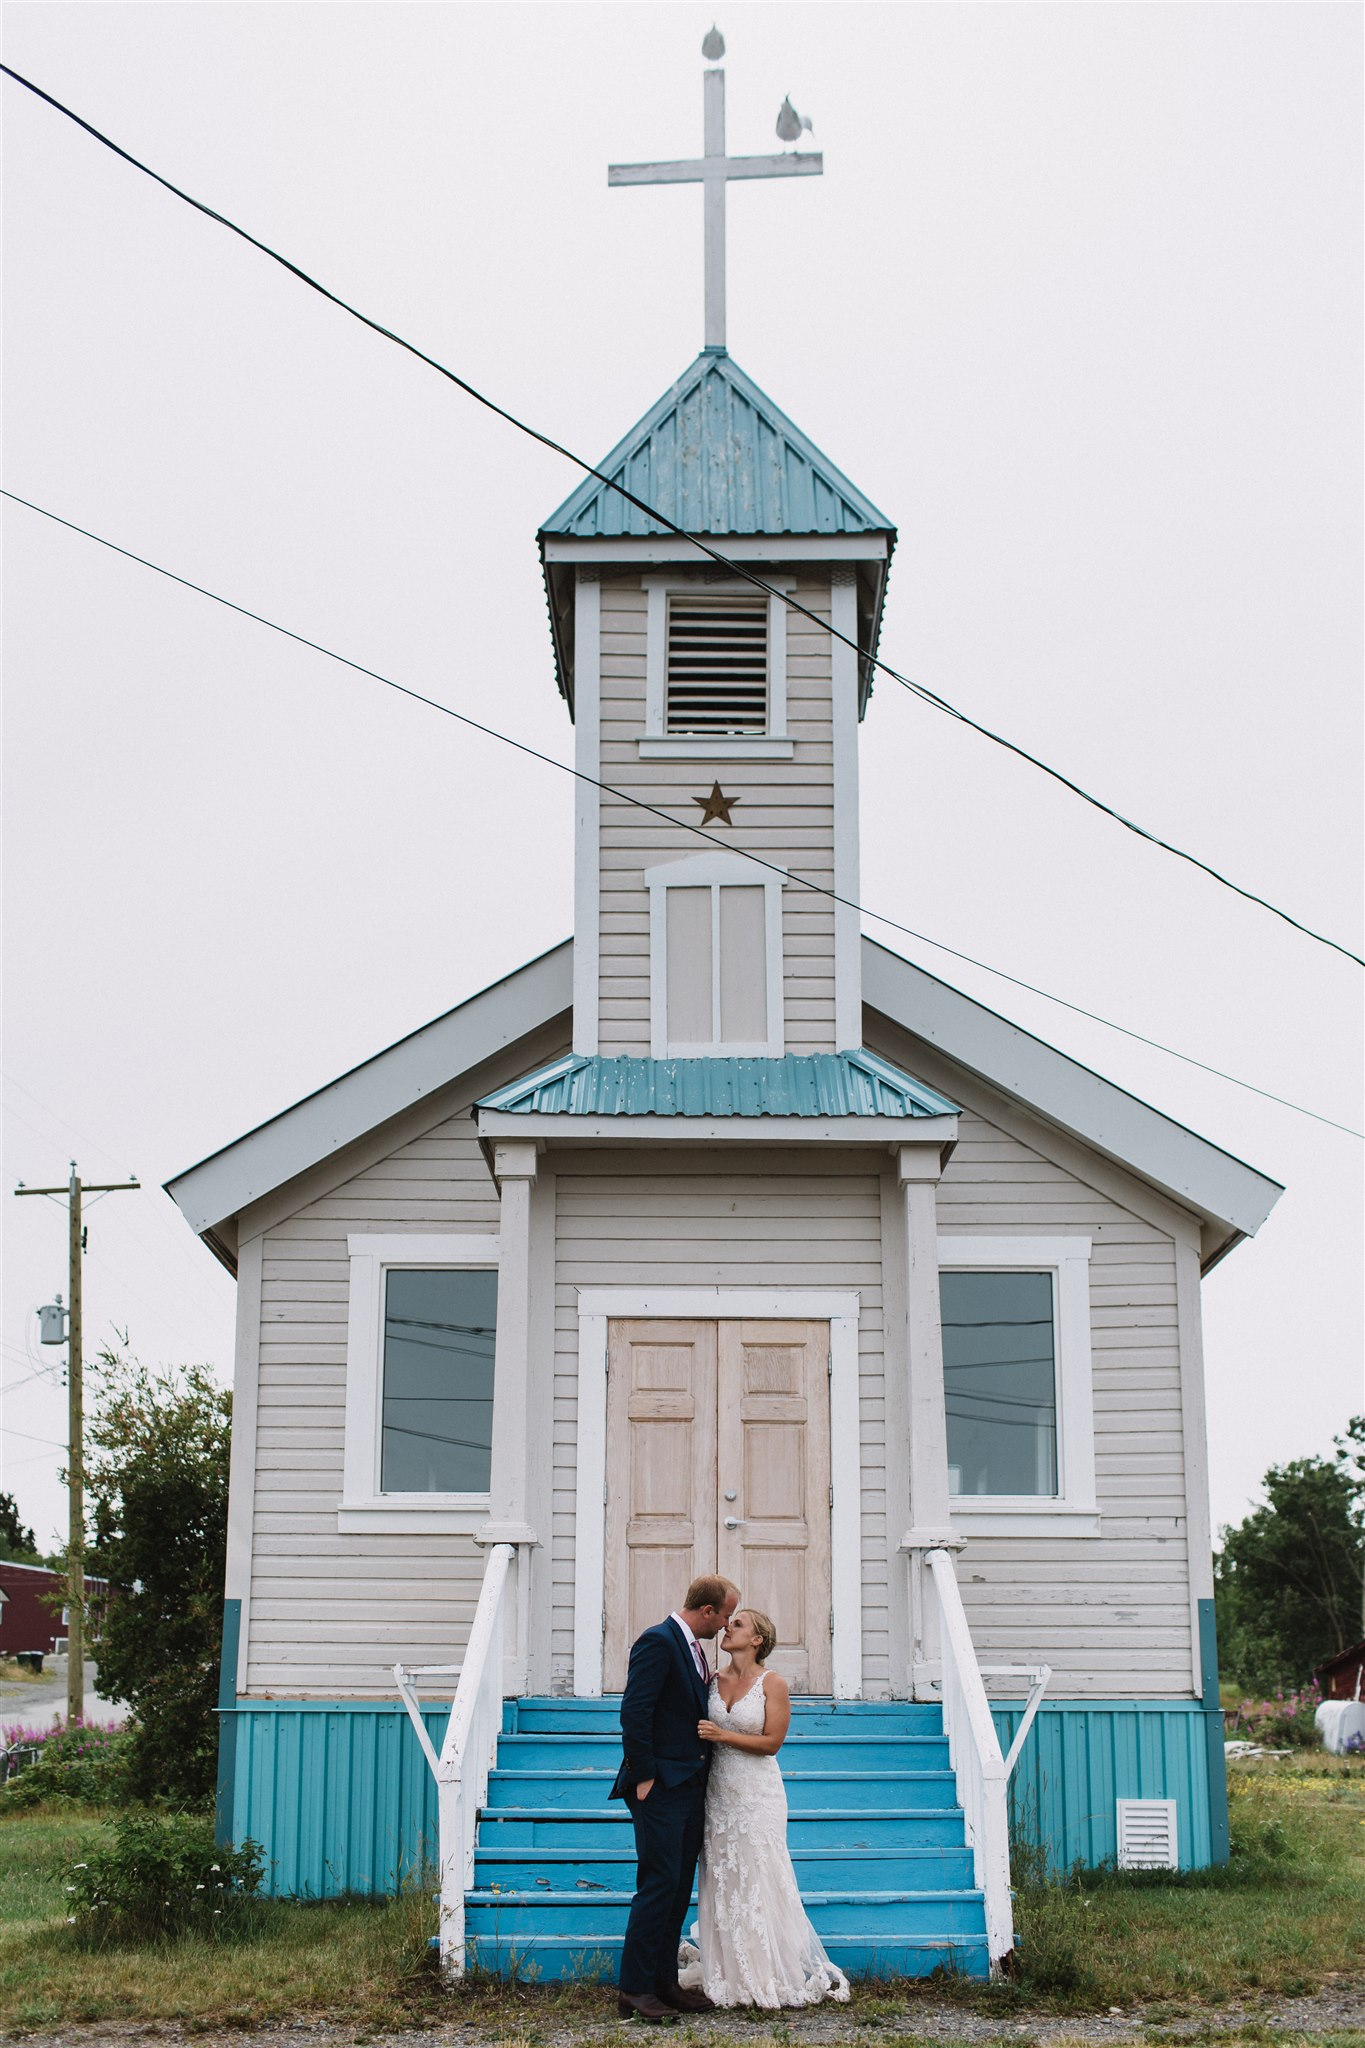 wedding photography in front of quaint church in Atlin, BC